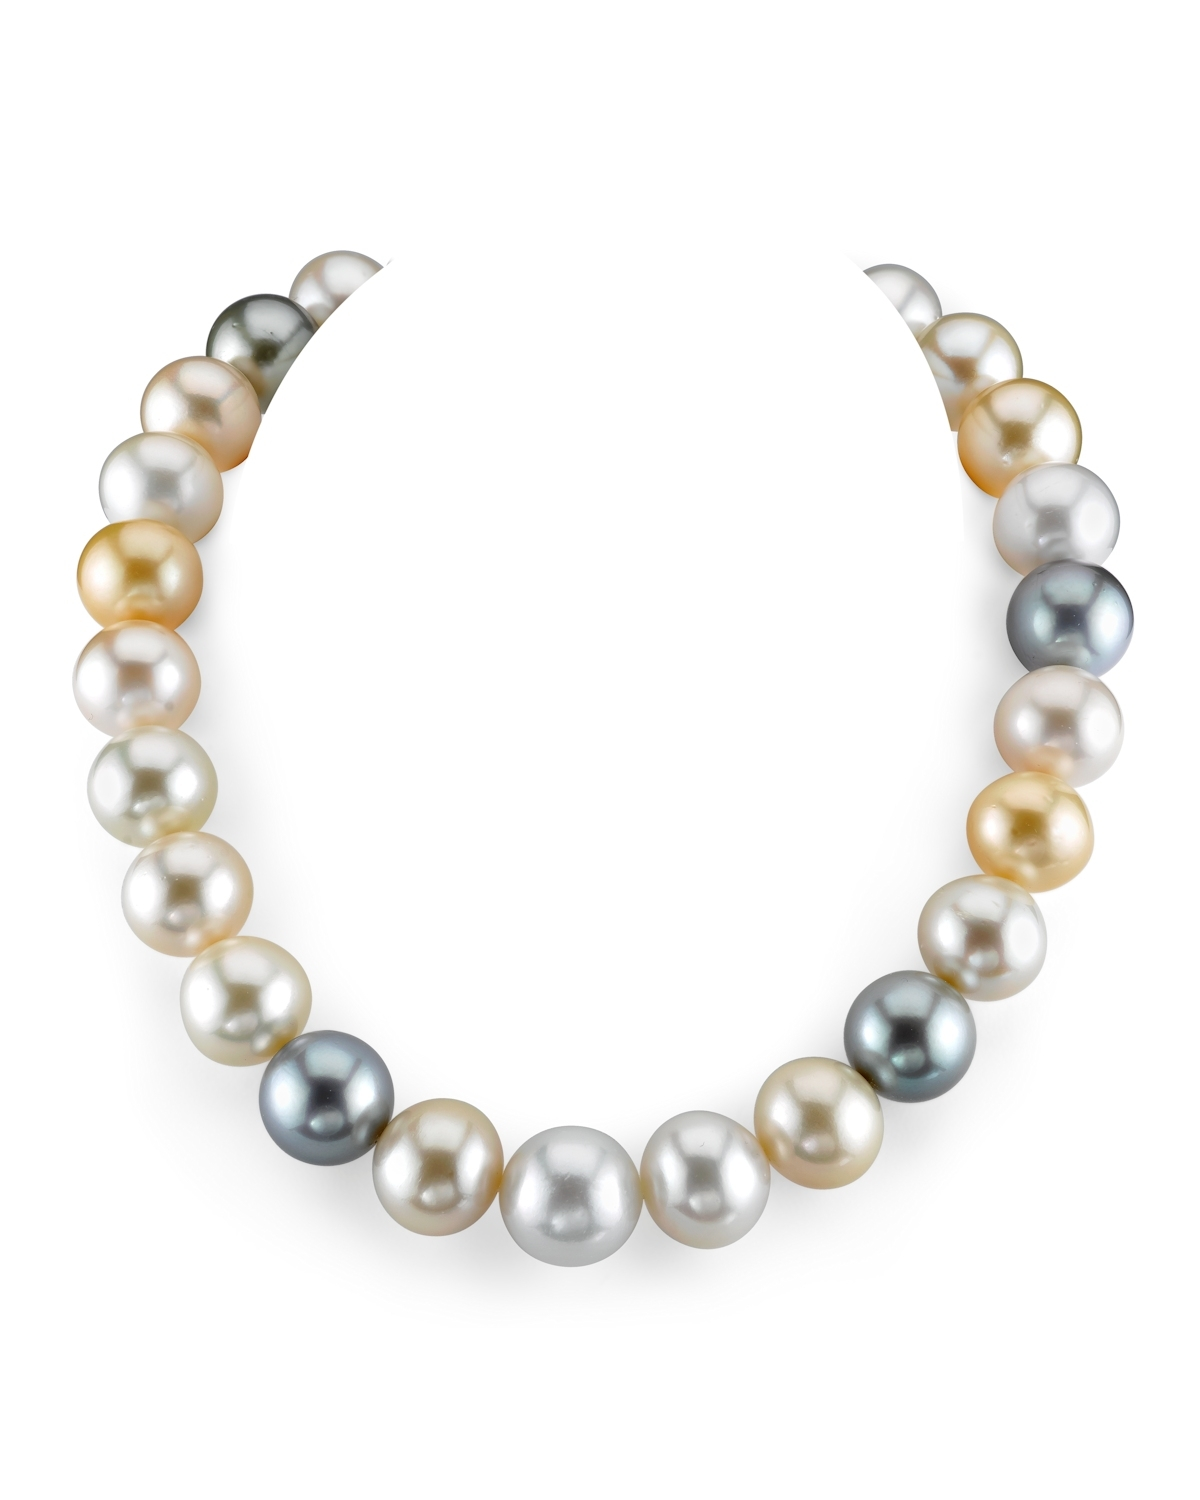 15-16.7mm South Sea Multicolor Pearl Necklace - AAA Quality